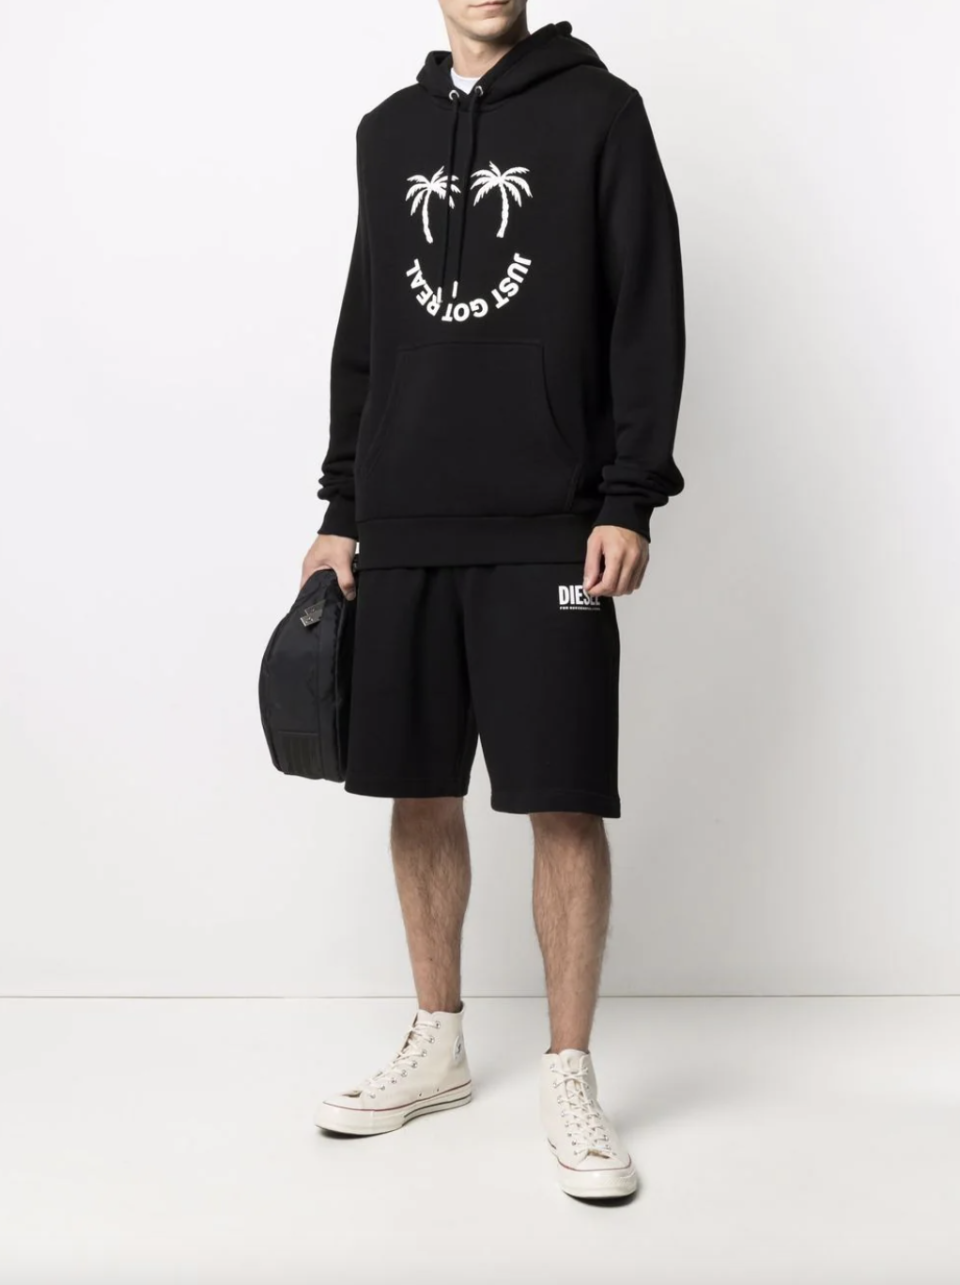 model in black Diesel Green Label Pal-Print Hoodie with palm trees and black shorts